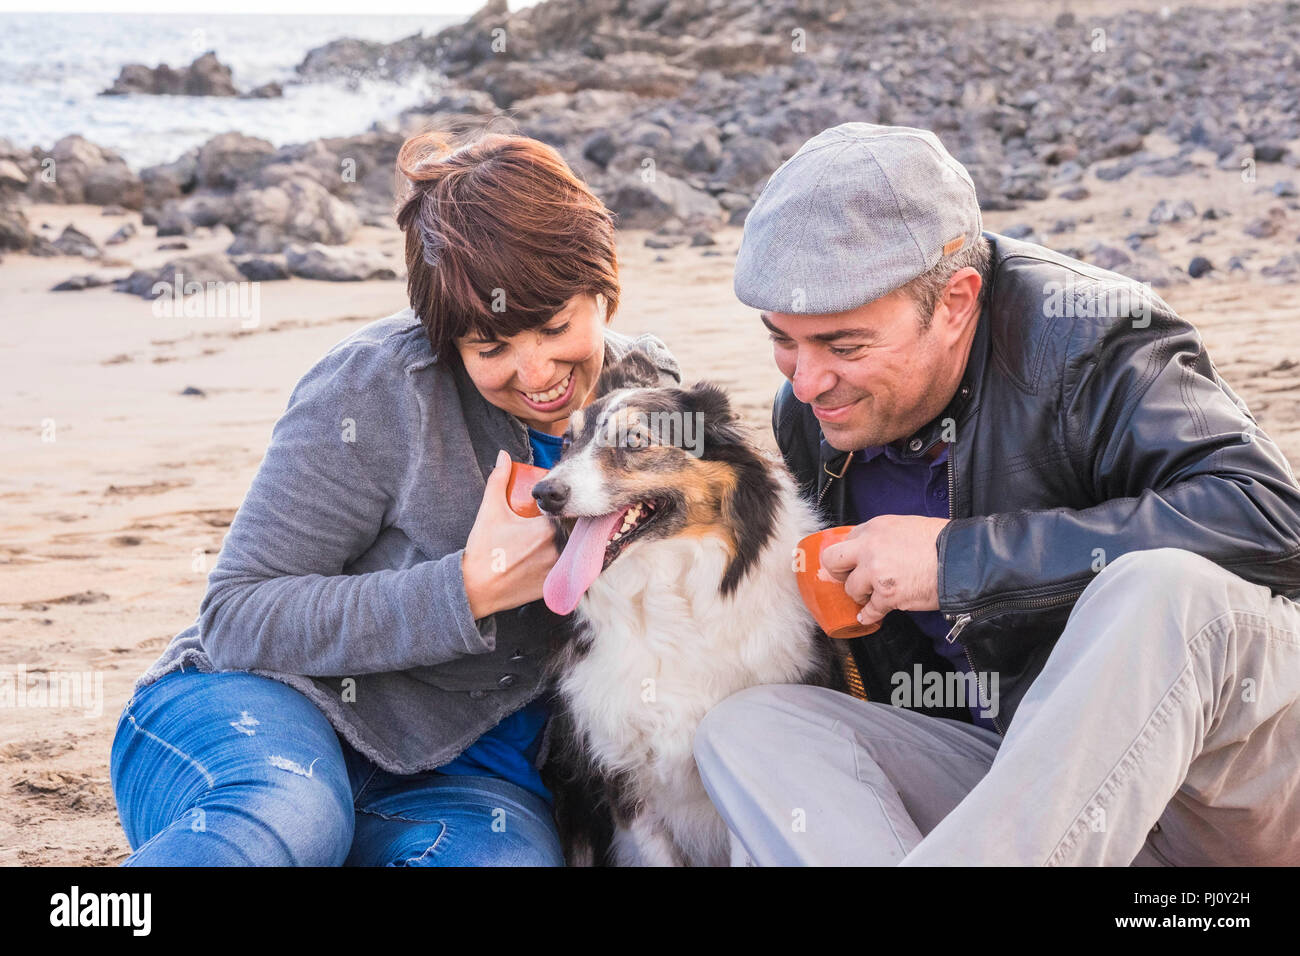 nice group of dog, man and woman young people having fun together at the beach drinking tea and enjoying the outdoor leisure activity. fashion people  - Stock Image